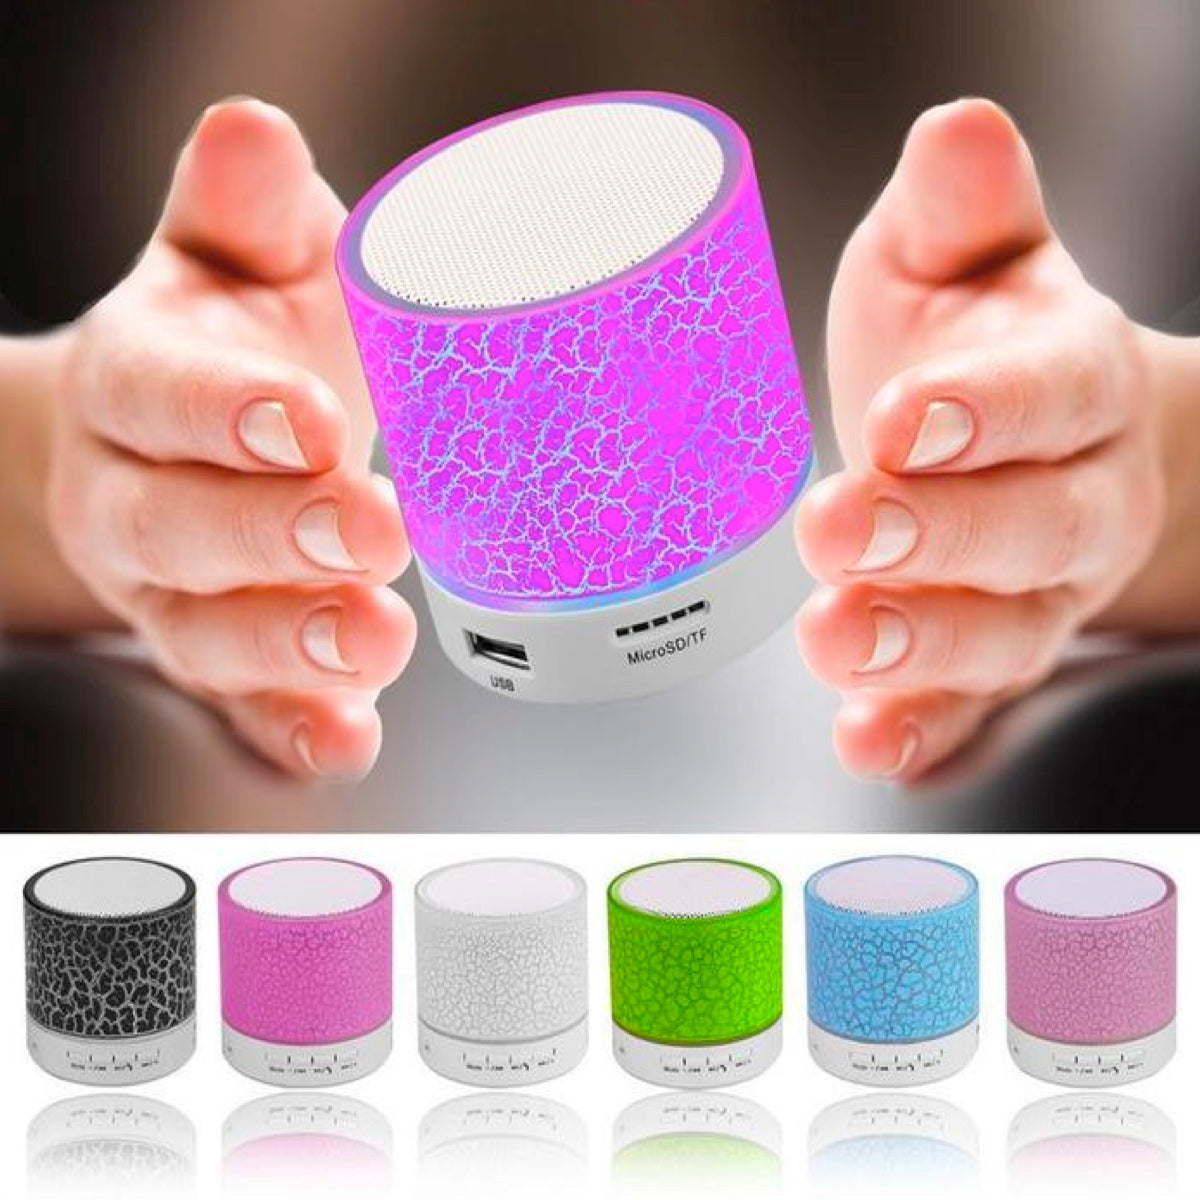 Mini LED Crackle Design Wireless Bluetooth v2.1 Speaker with USB & SD Card Support - Assorted Colors